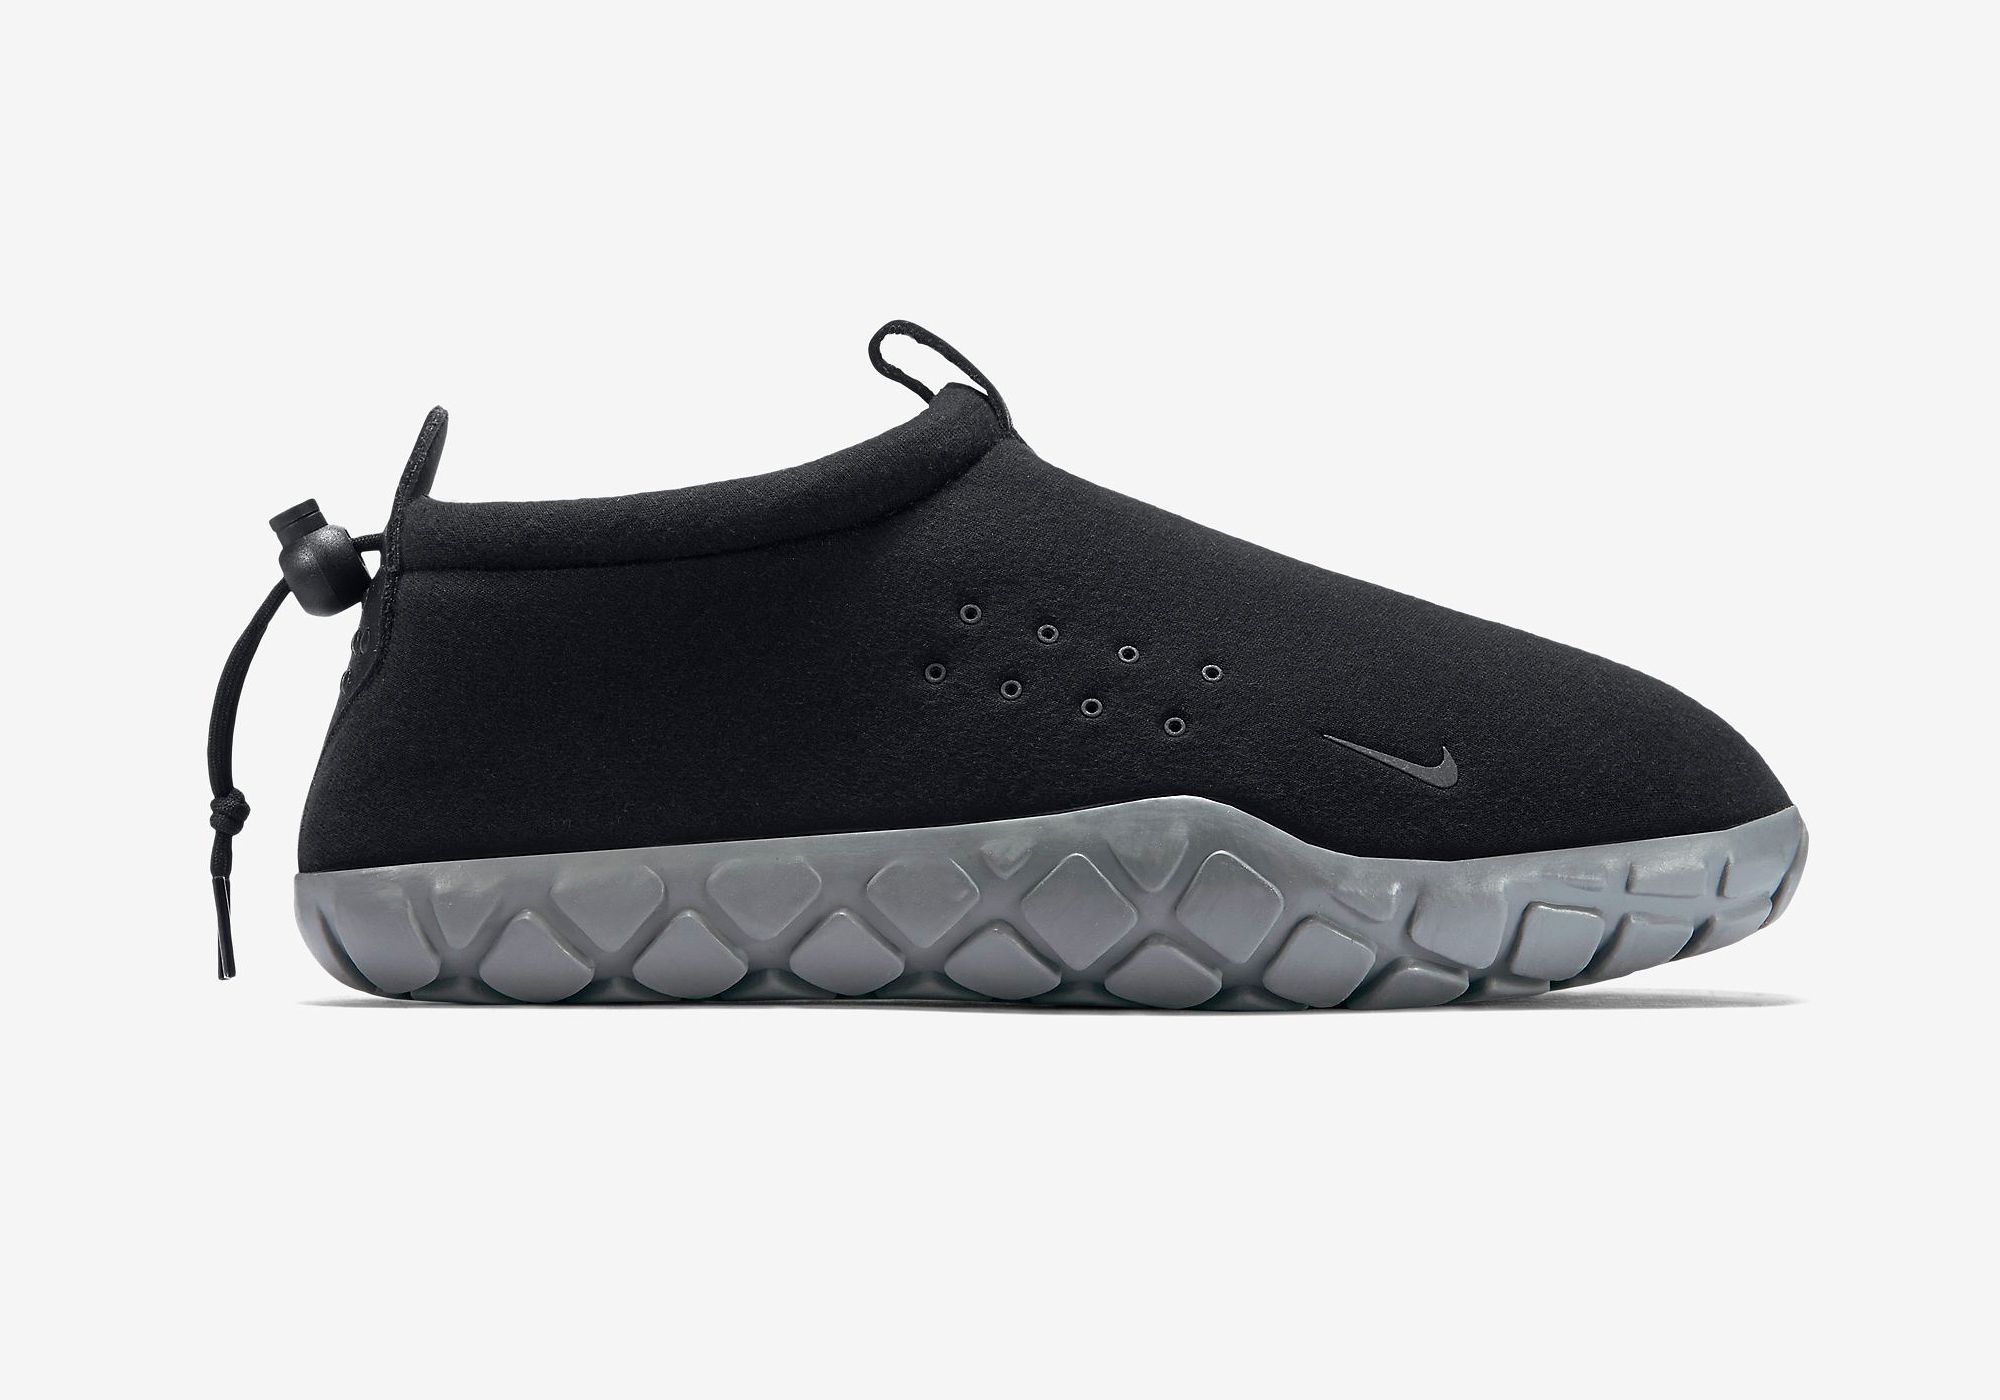 834591-010-nike-air-moc-tech-fleece-04